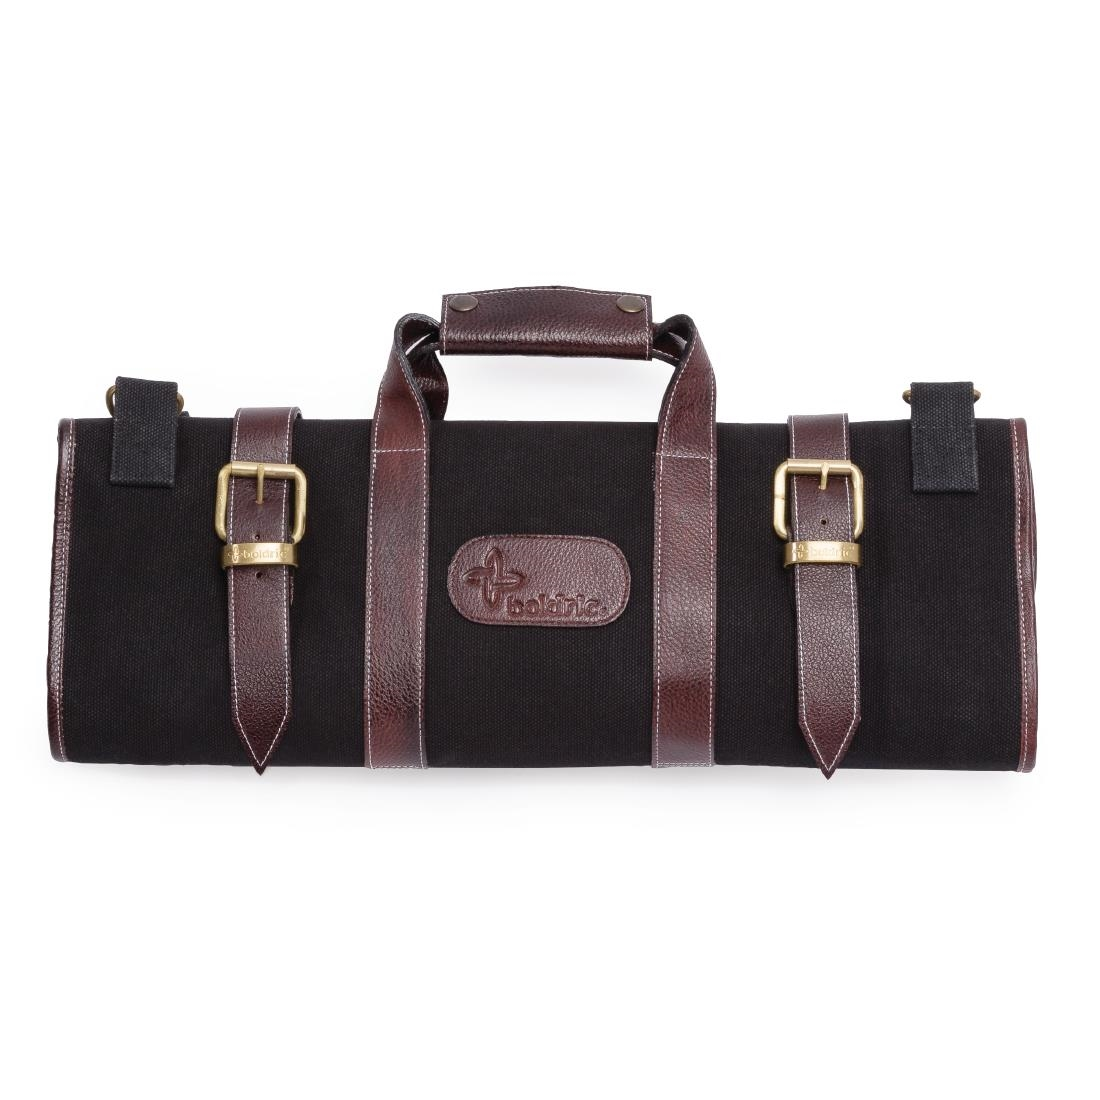 Image of Boldric Canvas Knife Bag Black 17 Slots